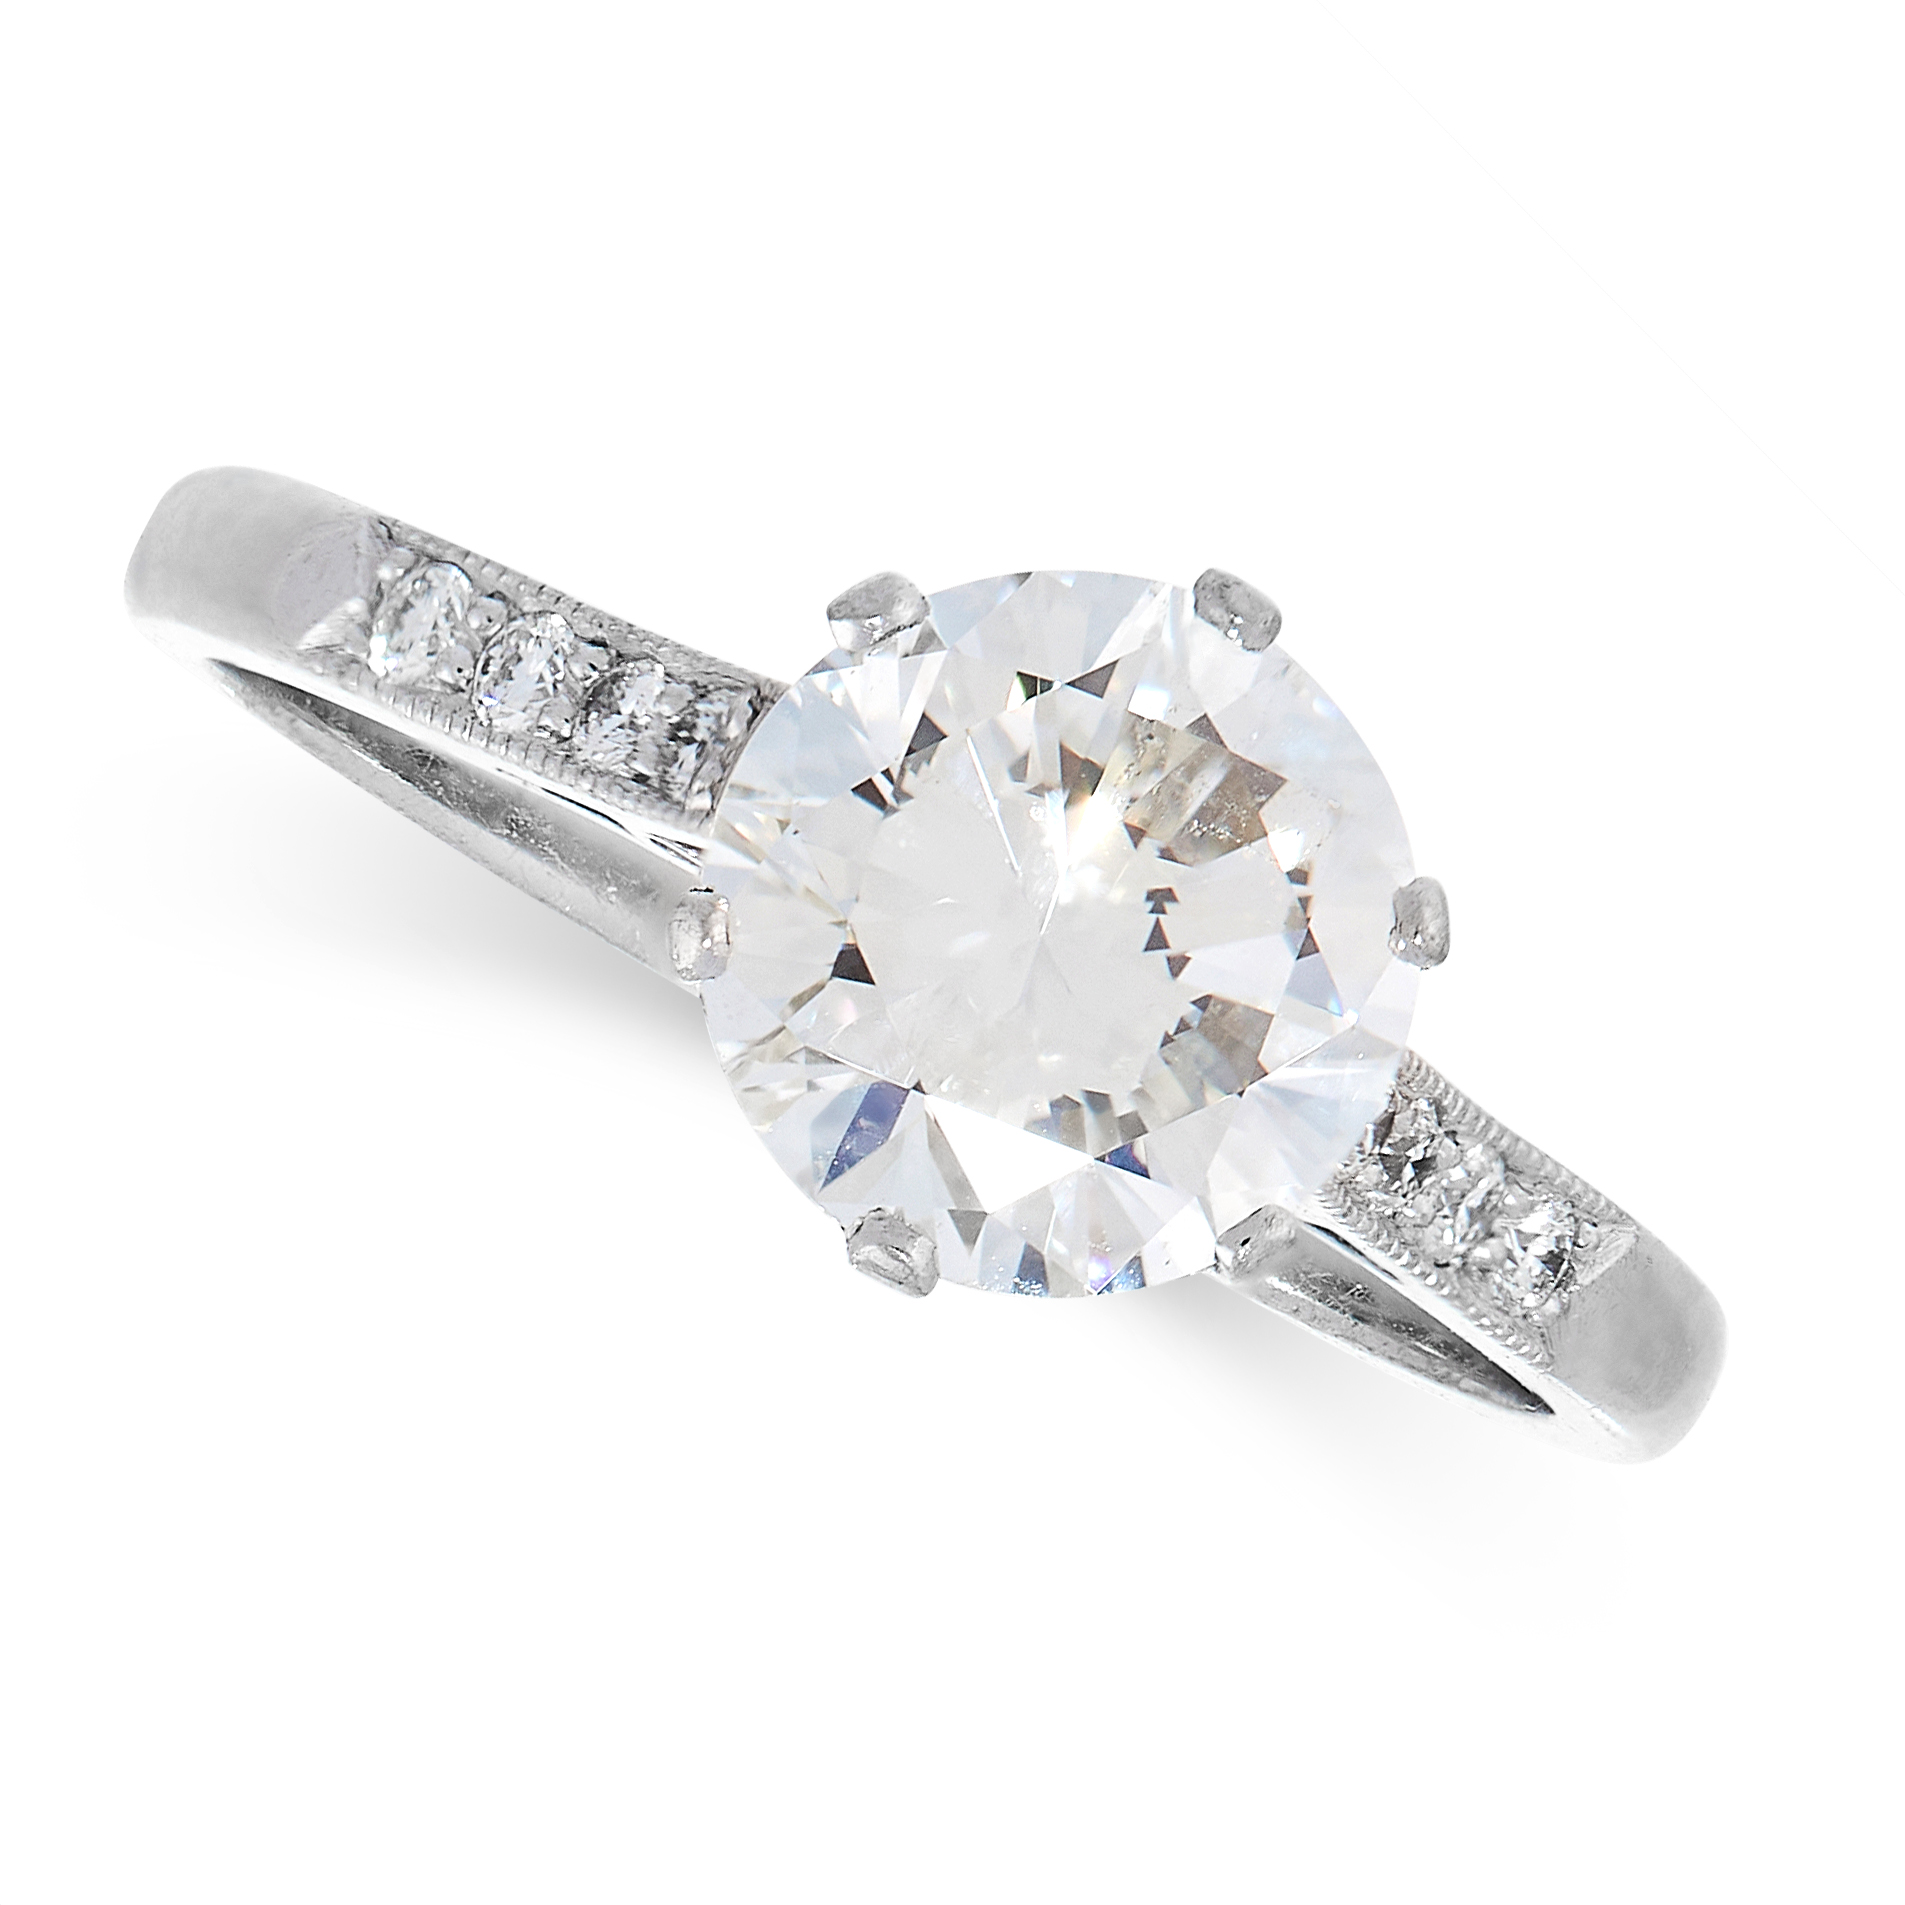 DIAMOND SOLITAIRE RING comprising of a round cut diamond of 1.76 carats with further round cut